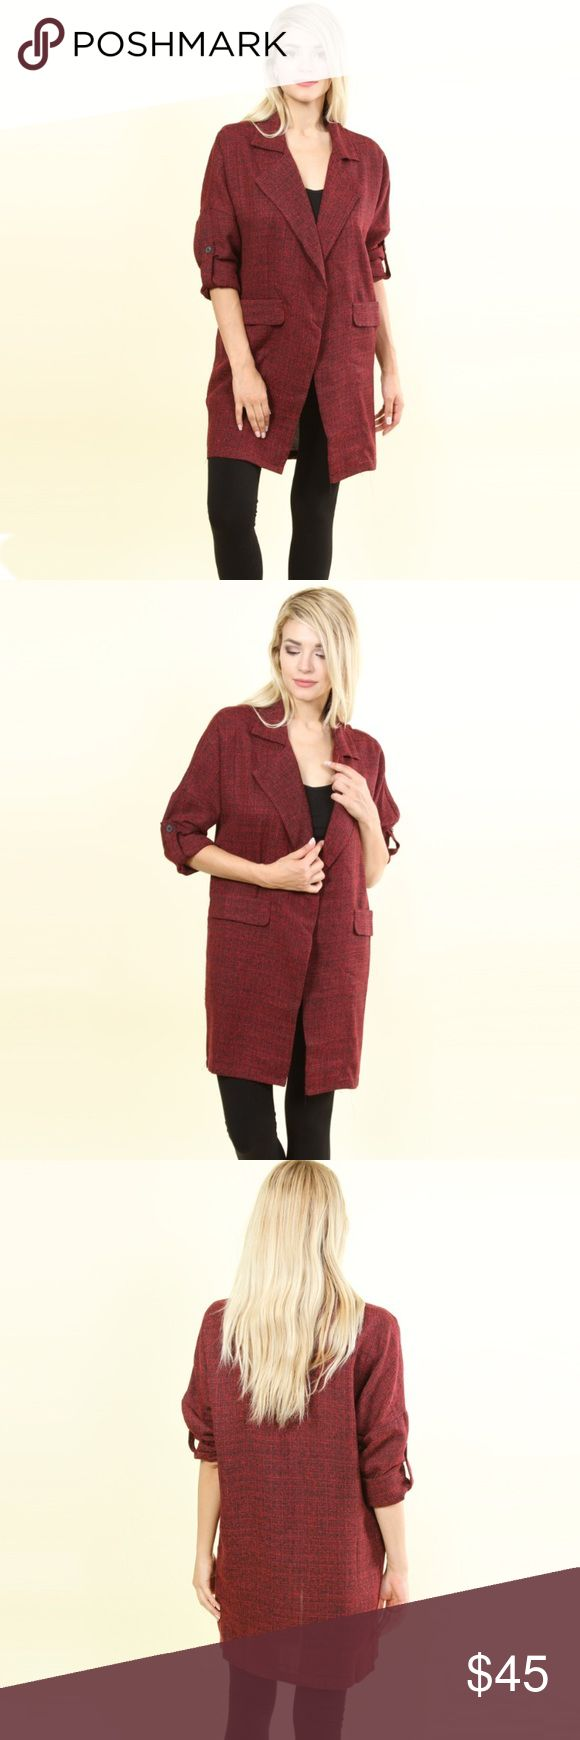 Business/Pleasure Trenchcoat Cardigan in Sangre 🍷 Brand: Hot & Delicious S Length: 33 S Waist: Free S Bust: Free Fits Sizes: XS-M  M Length: 34.5 M Waist: Free M Bust: Free Fits Sizes: S-L  L Length: 36 L Waist: Free L Bust: Free Fits Sizes: M-XL  🍑Price FIRM unless bundled🍑 Perfect transition piece for fall! This baby is heavy, high quality and sure to be a go-to as the season changes. Open front design and HUGE pockets! Poly tweed. Jackets & Coats Trench Coats